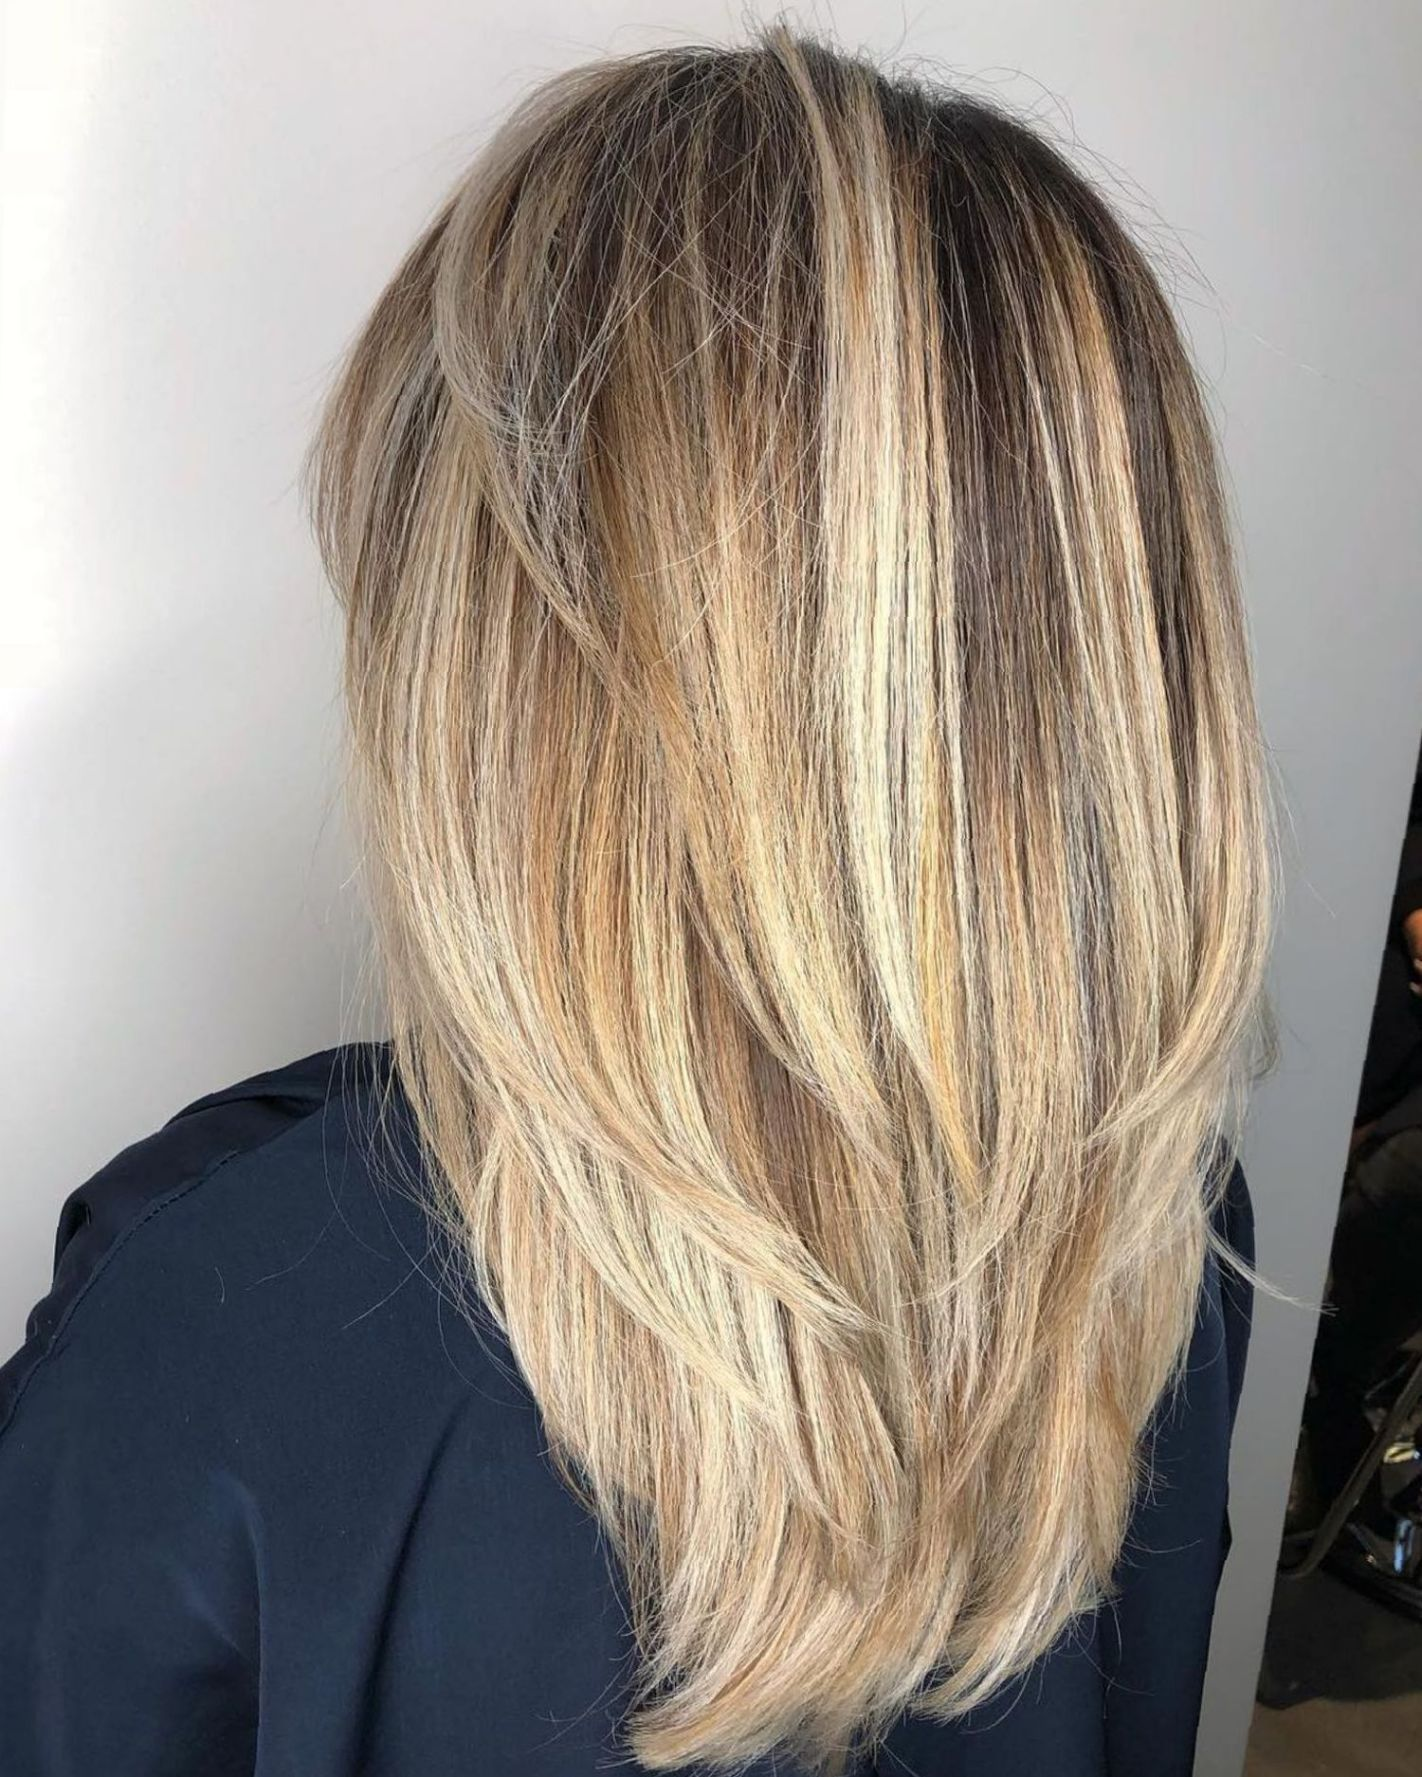 Long Layered Hairstyles 2019: Pin On Straight Hair Ideas